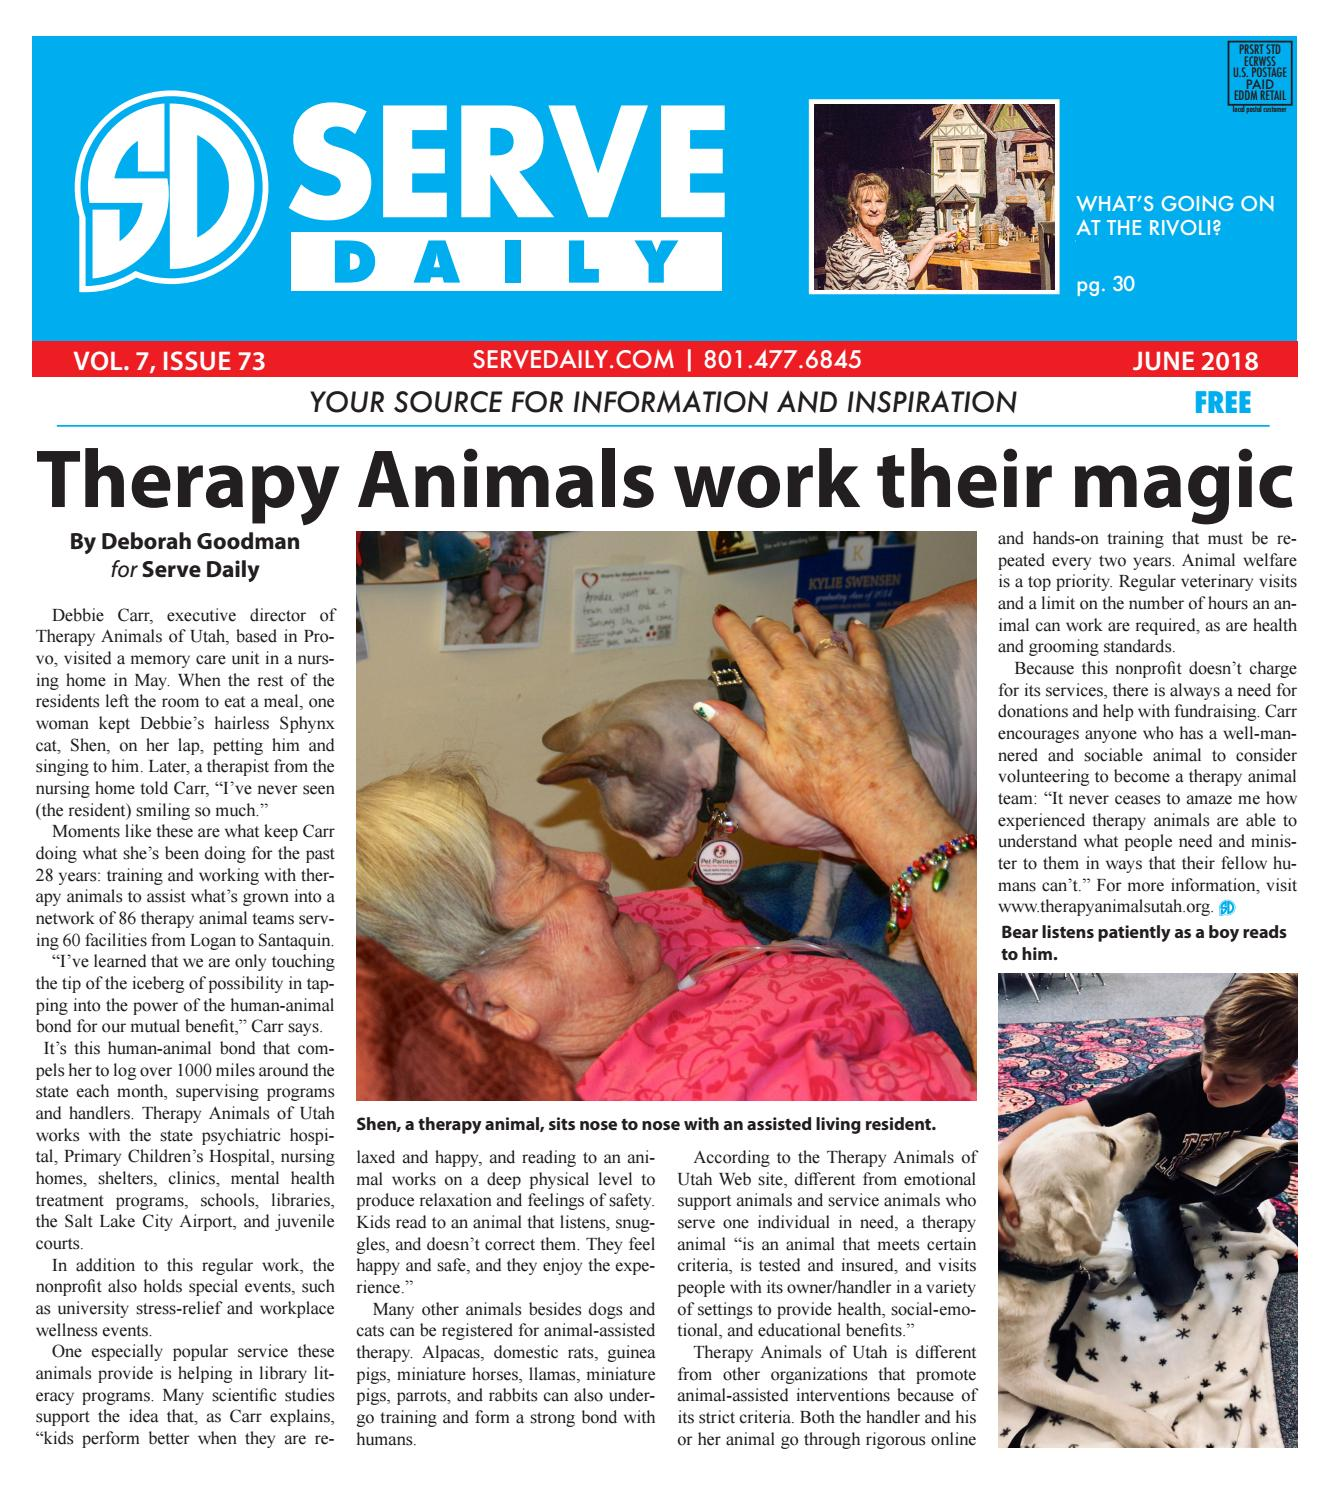 Serve Daily Volume 7, Issue 73 June 2018 by Serve Daily - issuu